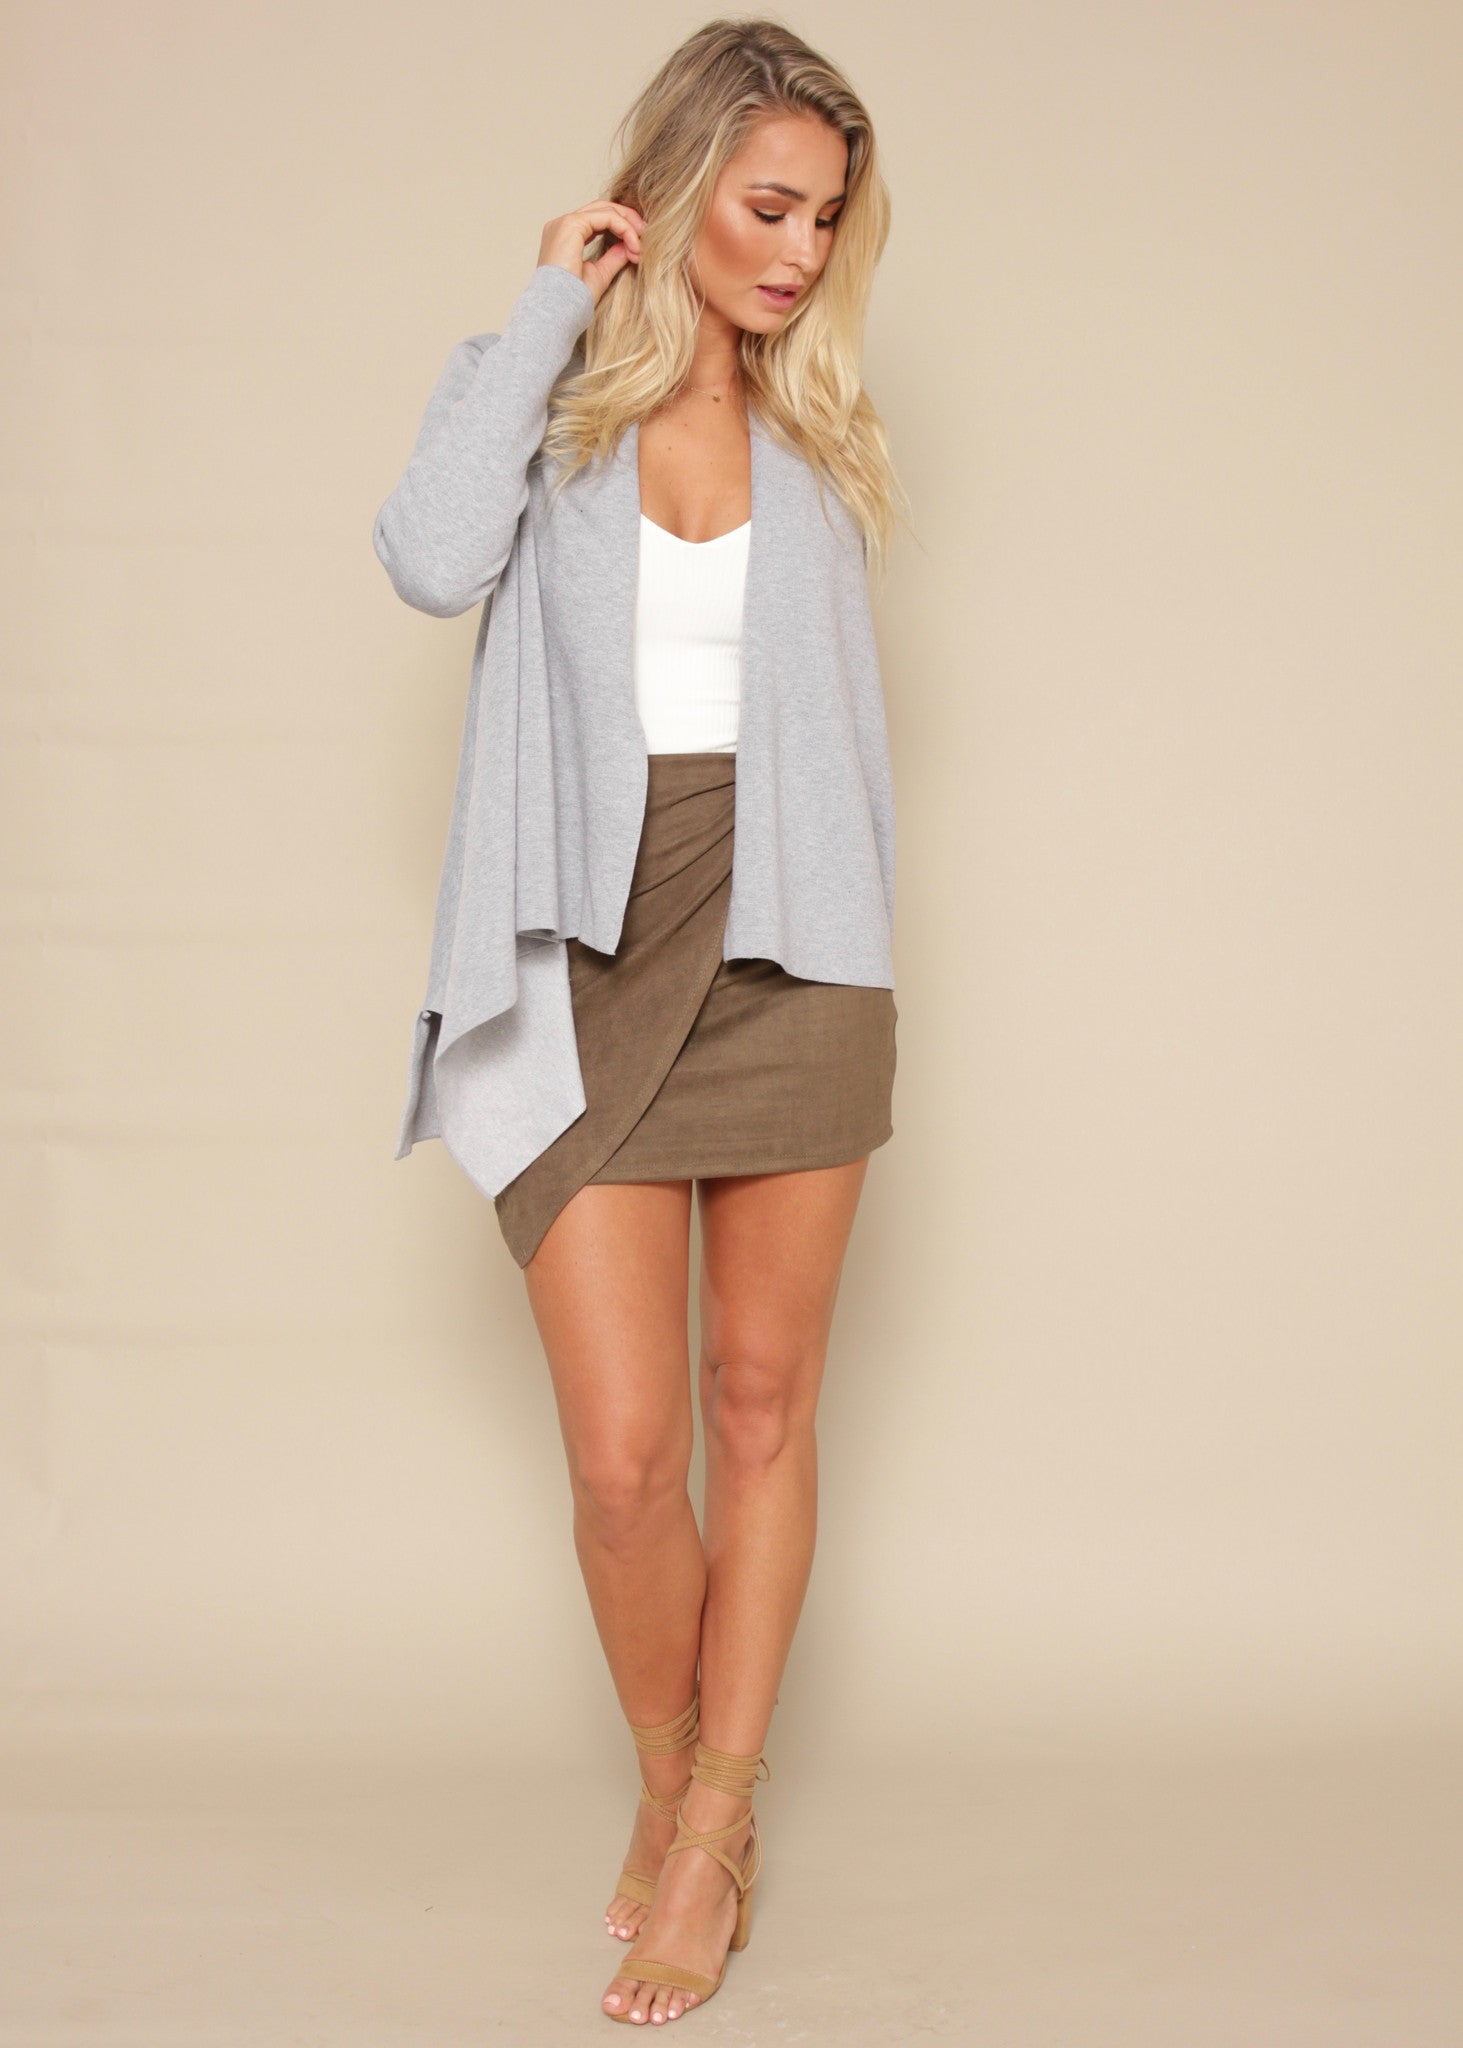 In It Together Knit Jacket - Grey